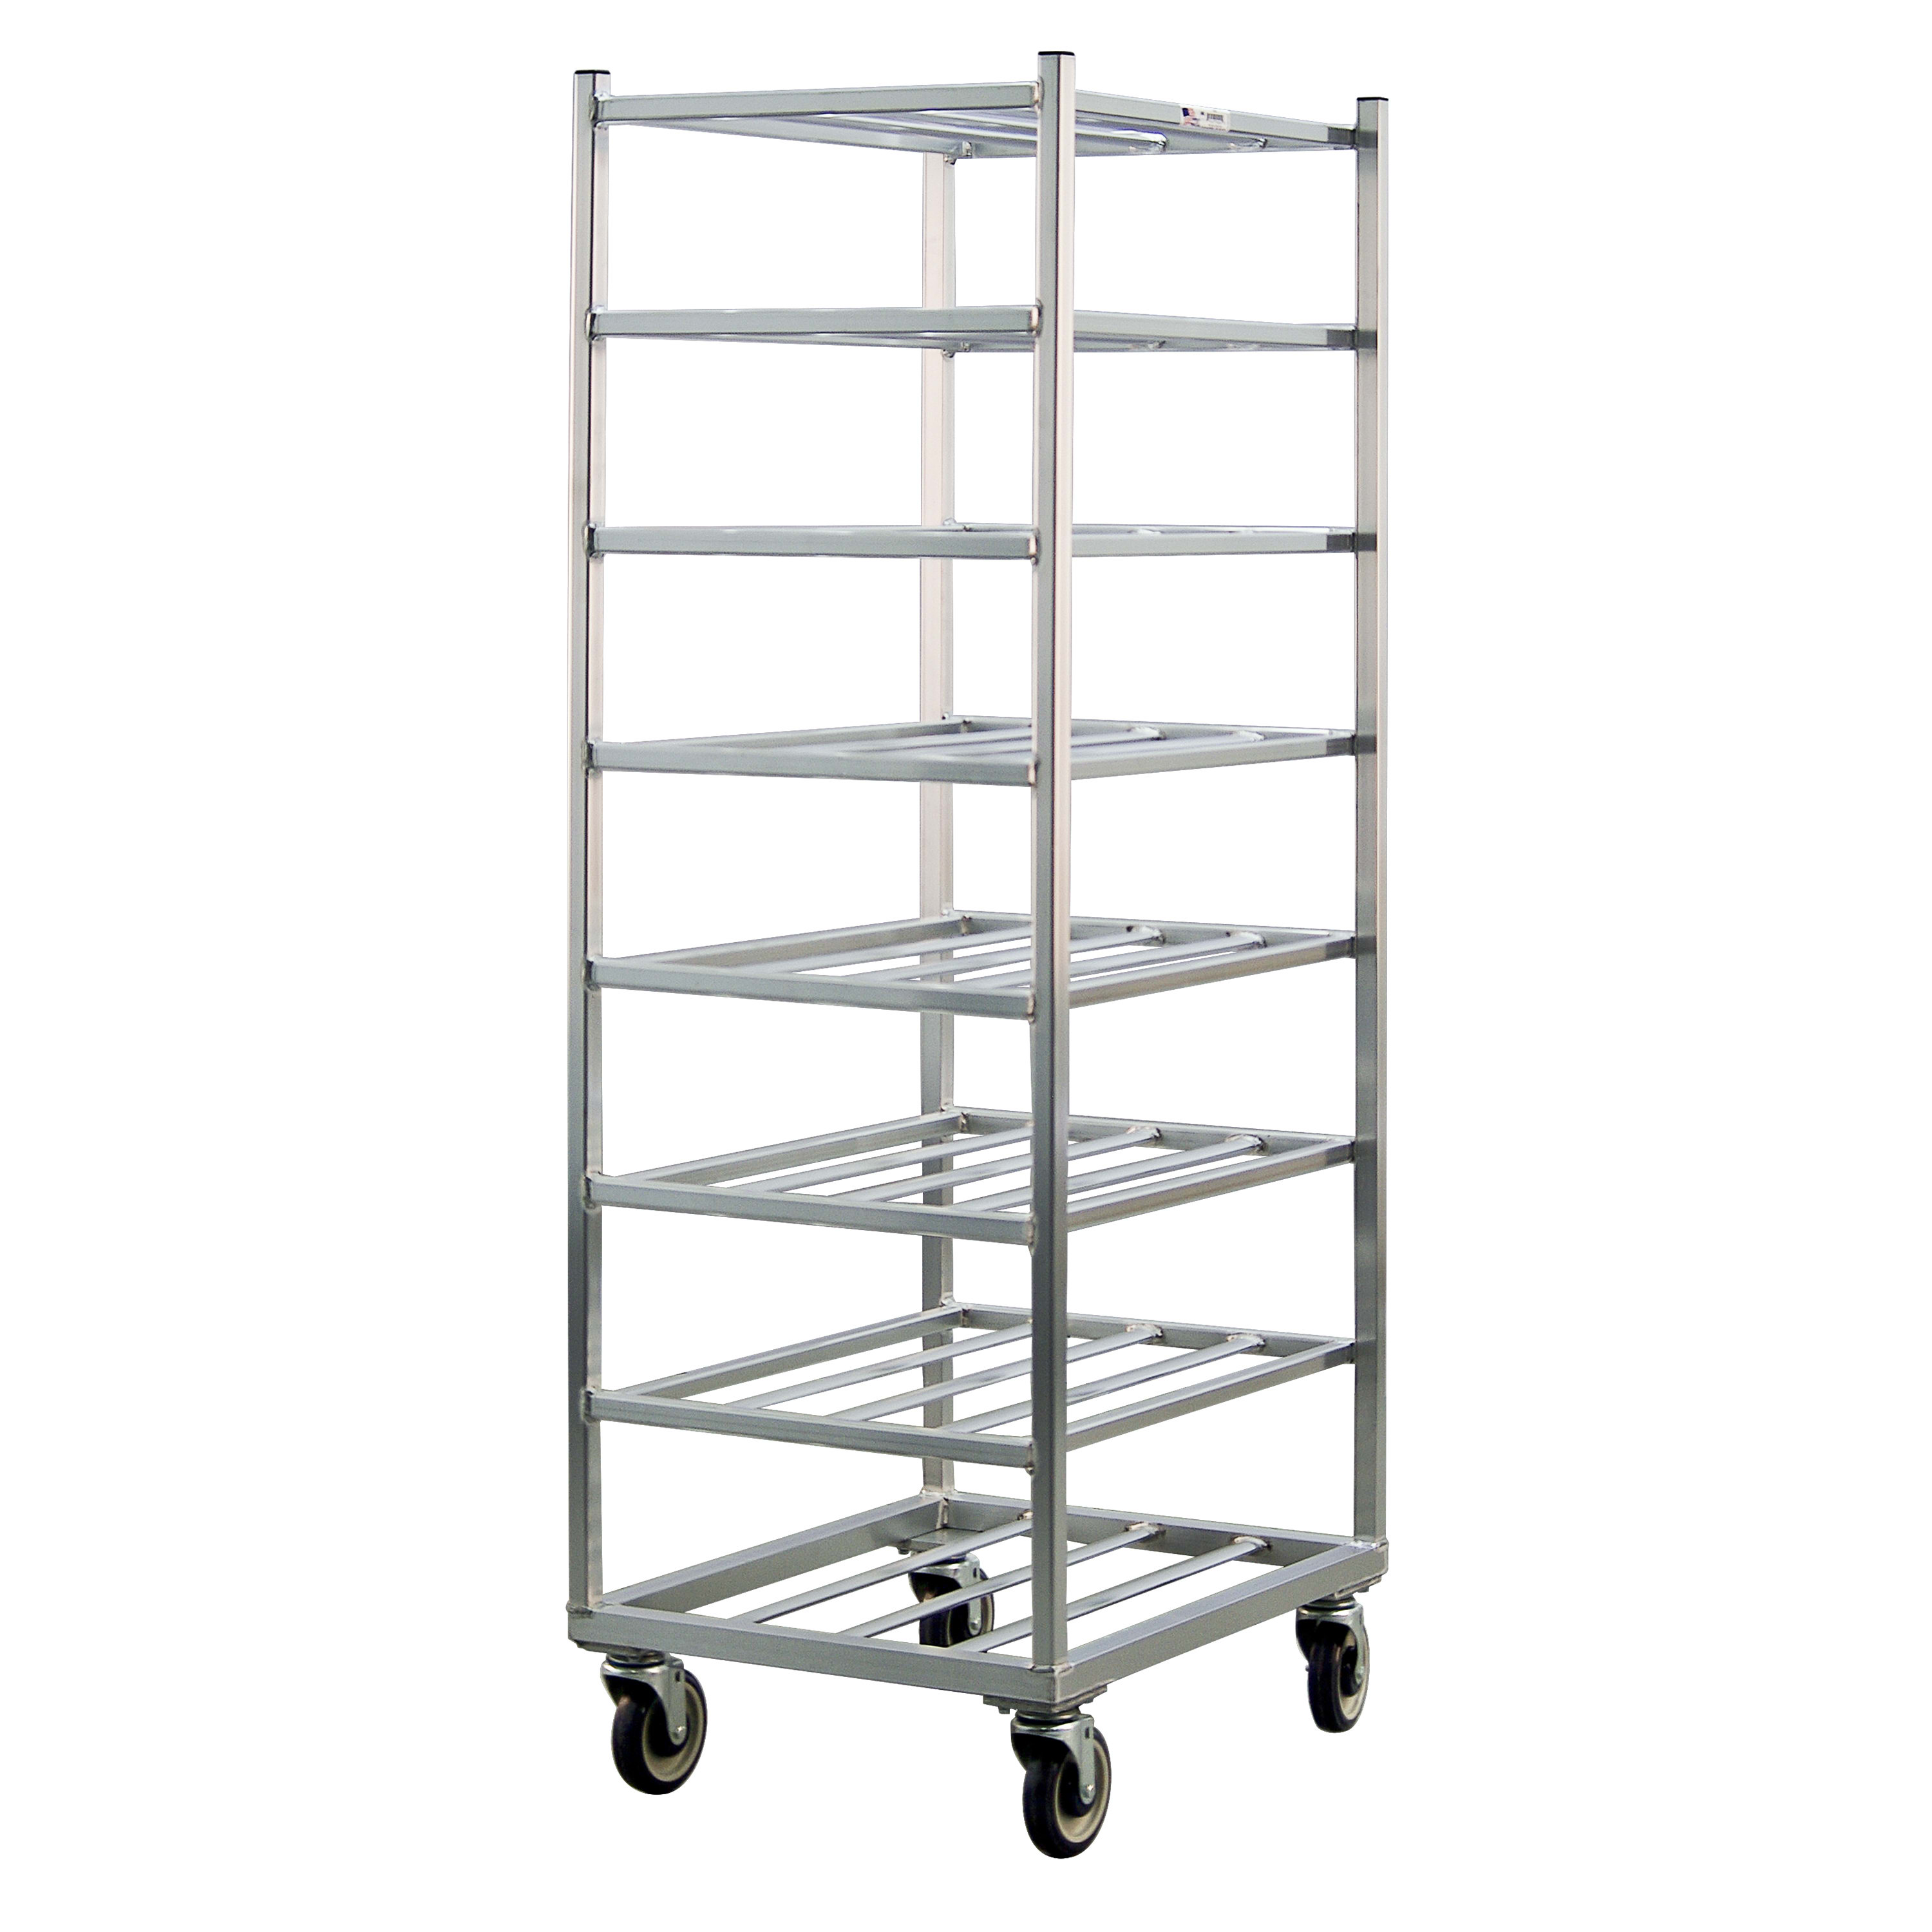 "New Age 1358 20.88""W 8 Specialty Pan Rack w/ 7.25"" Bottom Load Slides"